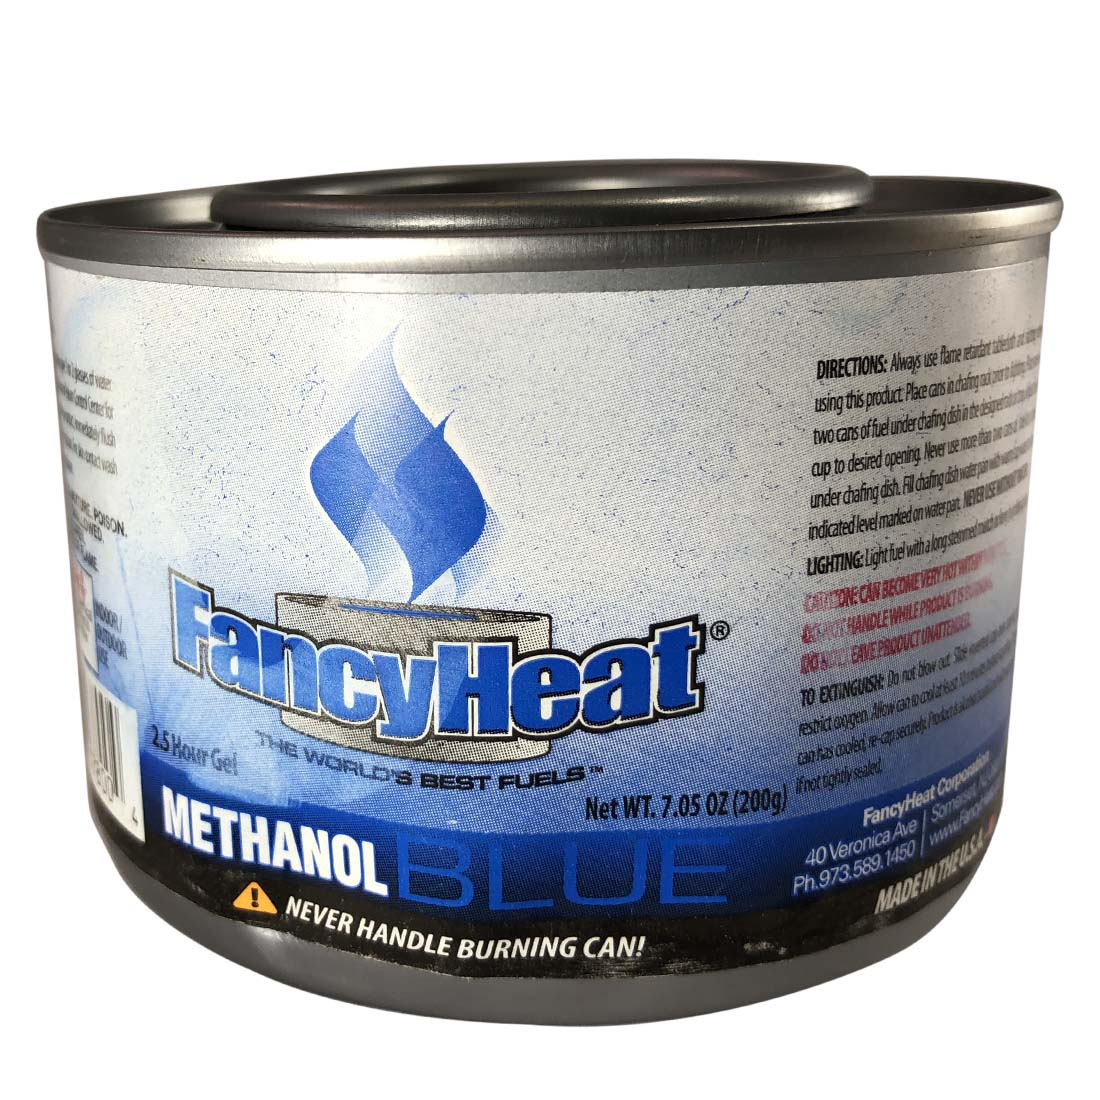 "View FANCY HEAT STERNO 7.05 OZ (200g) 2.5 HOUR METHANOL GEL ***CANNOT BE SOLD IN PENNSYLVANIA***  ""MAX 20 CASES"""